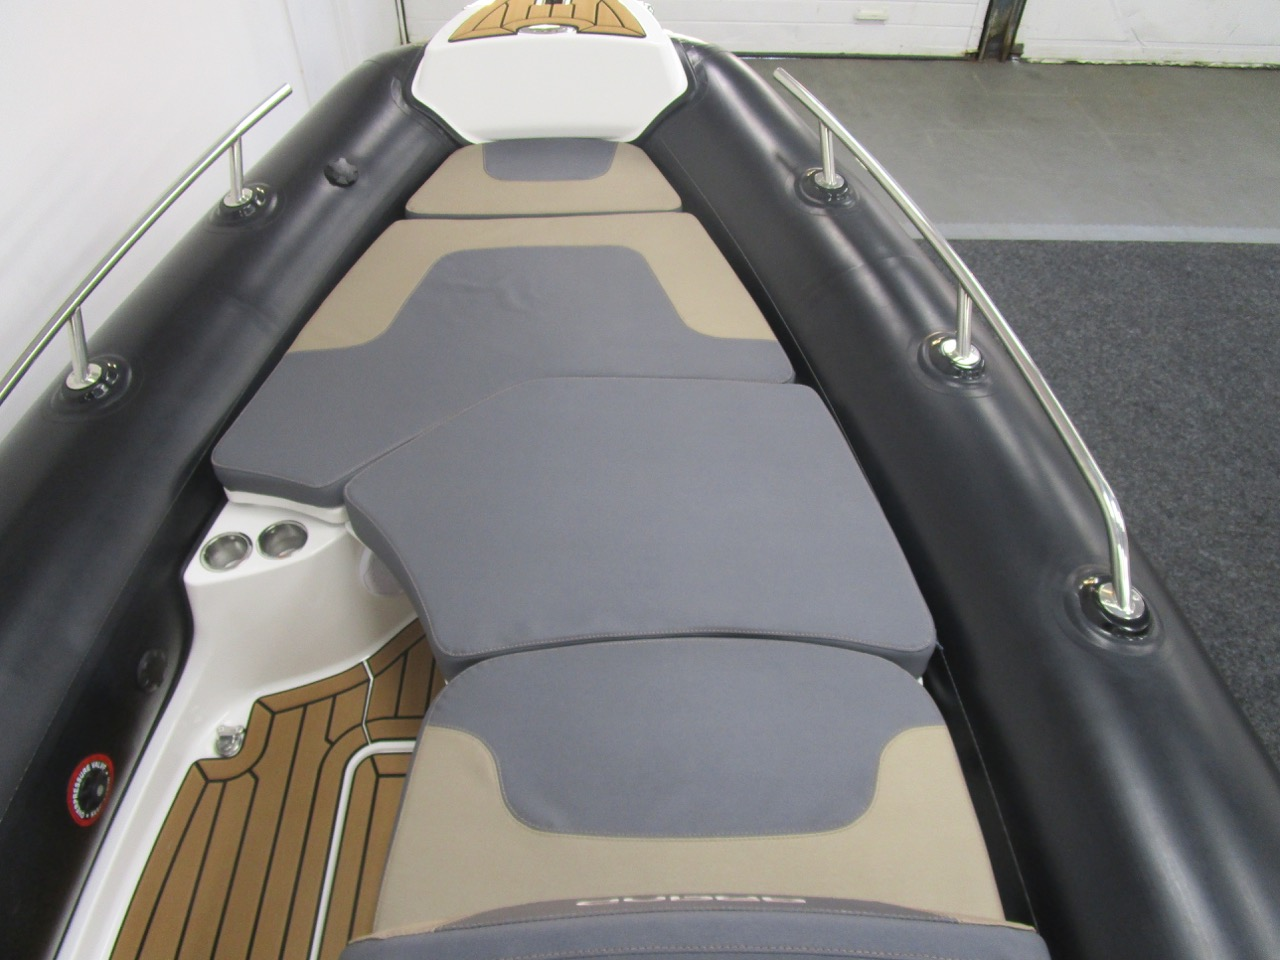 GRAND G500 RIBSundeck and cushions fitted